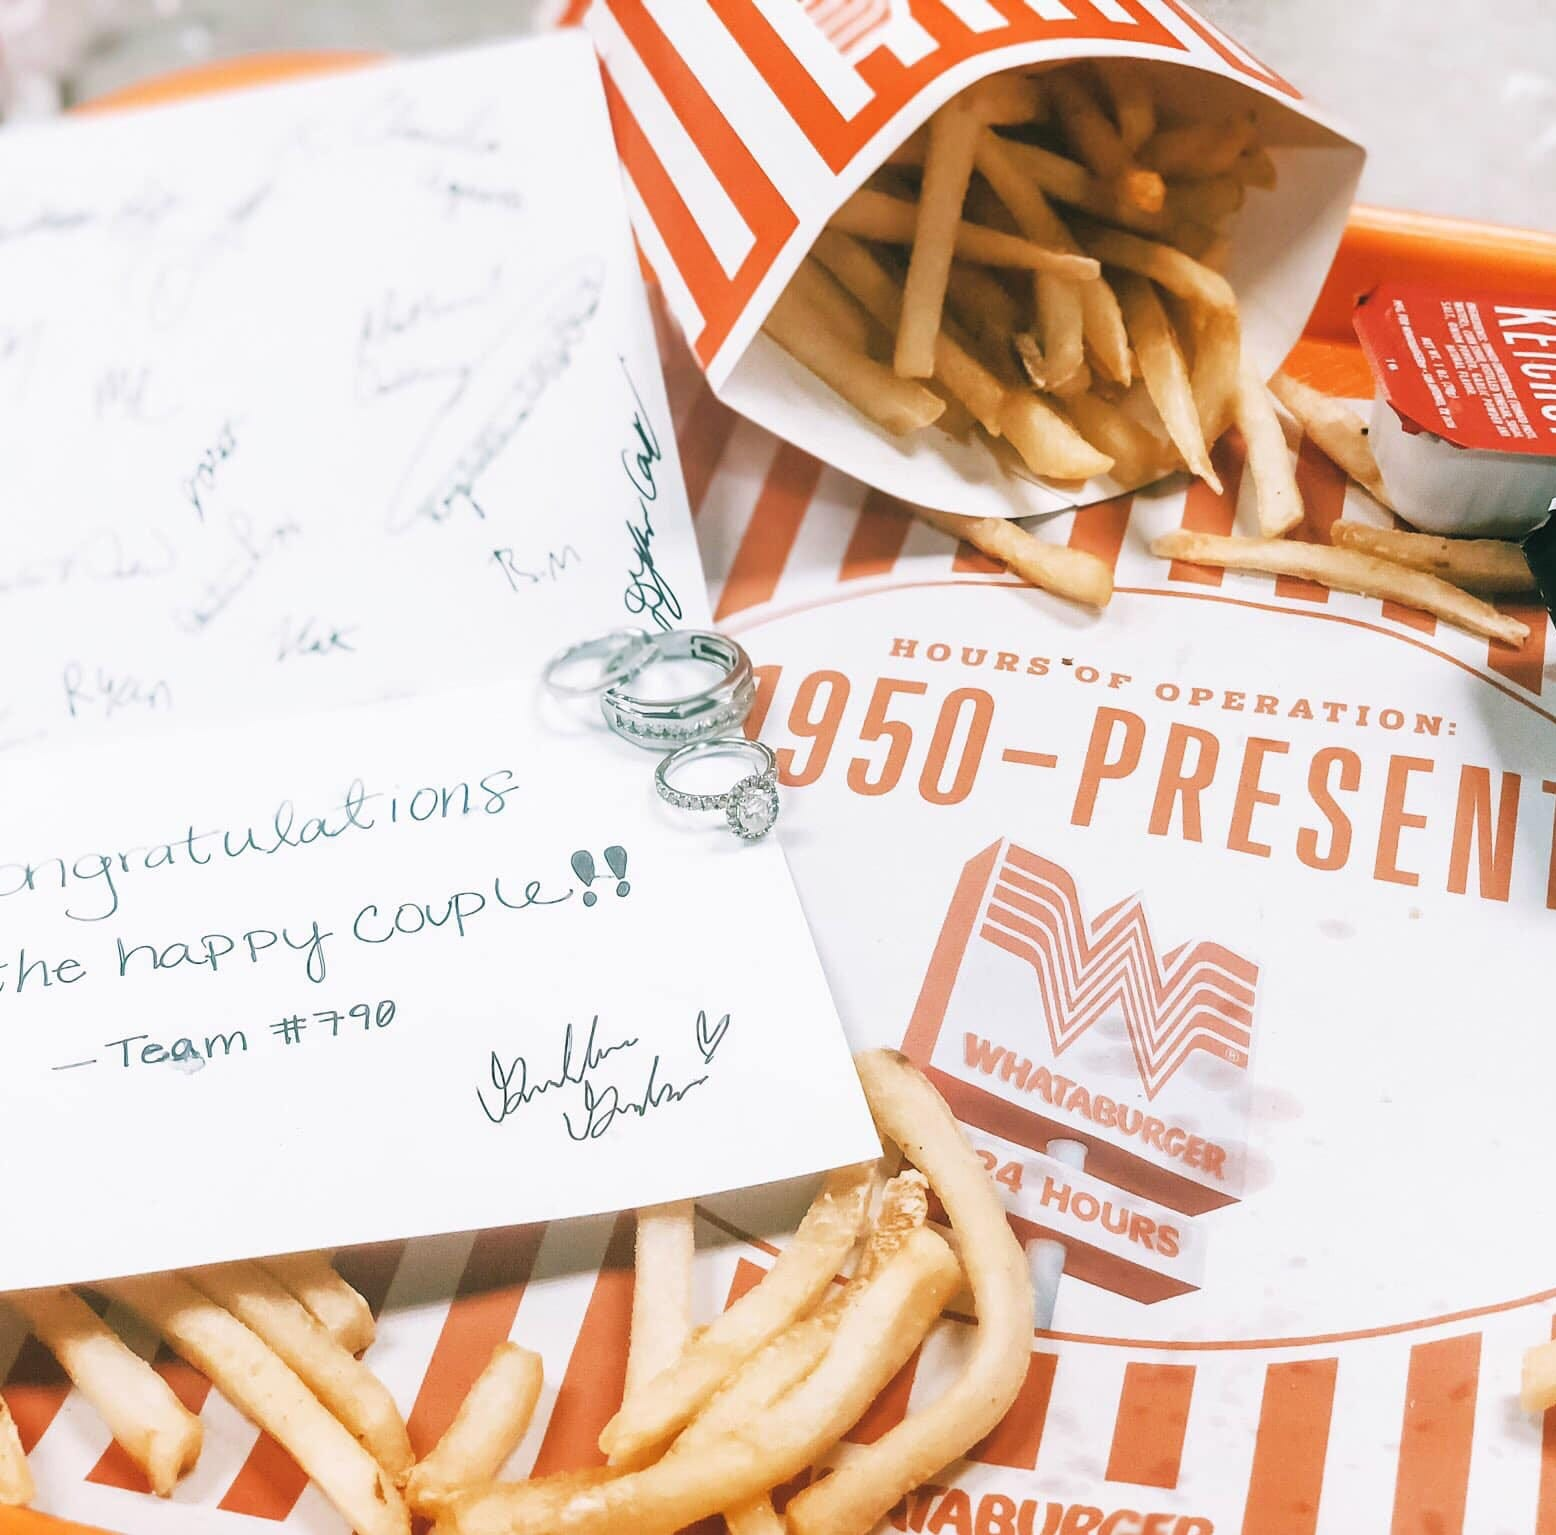 Whataburger, founded in Corpus Christi, hires investment firm to explore possible sale